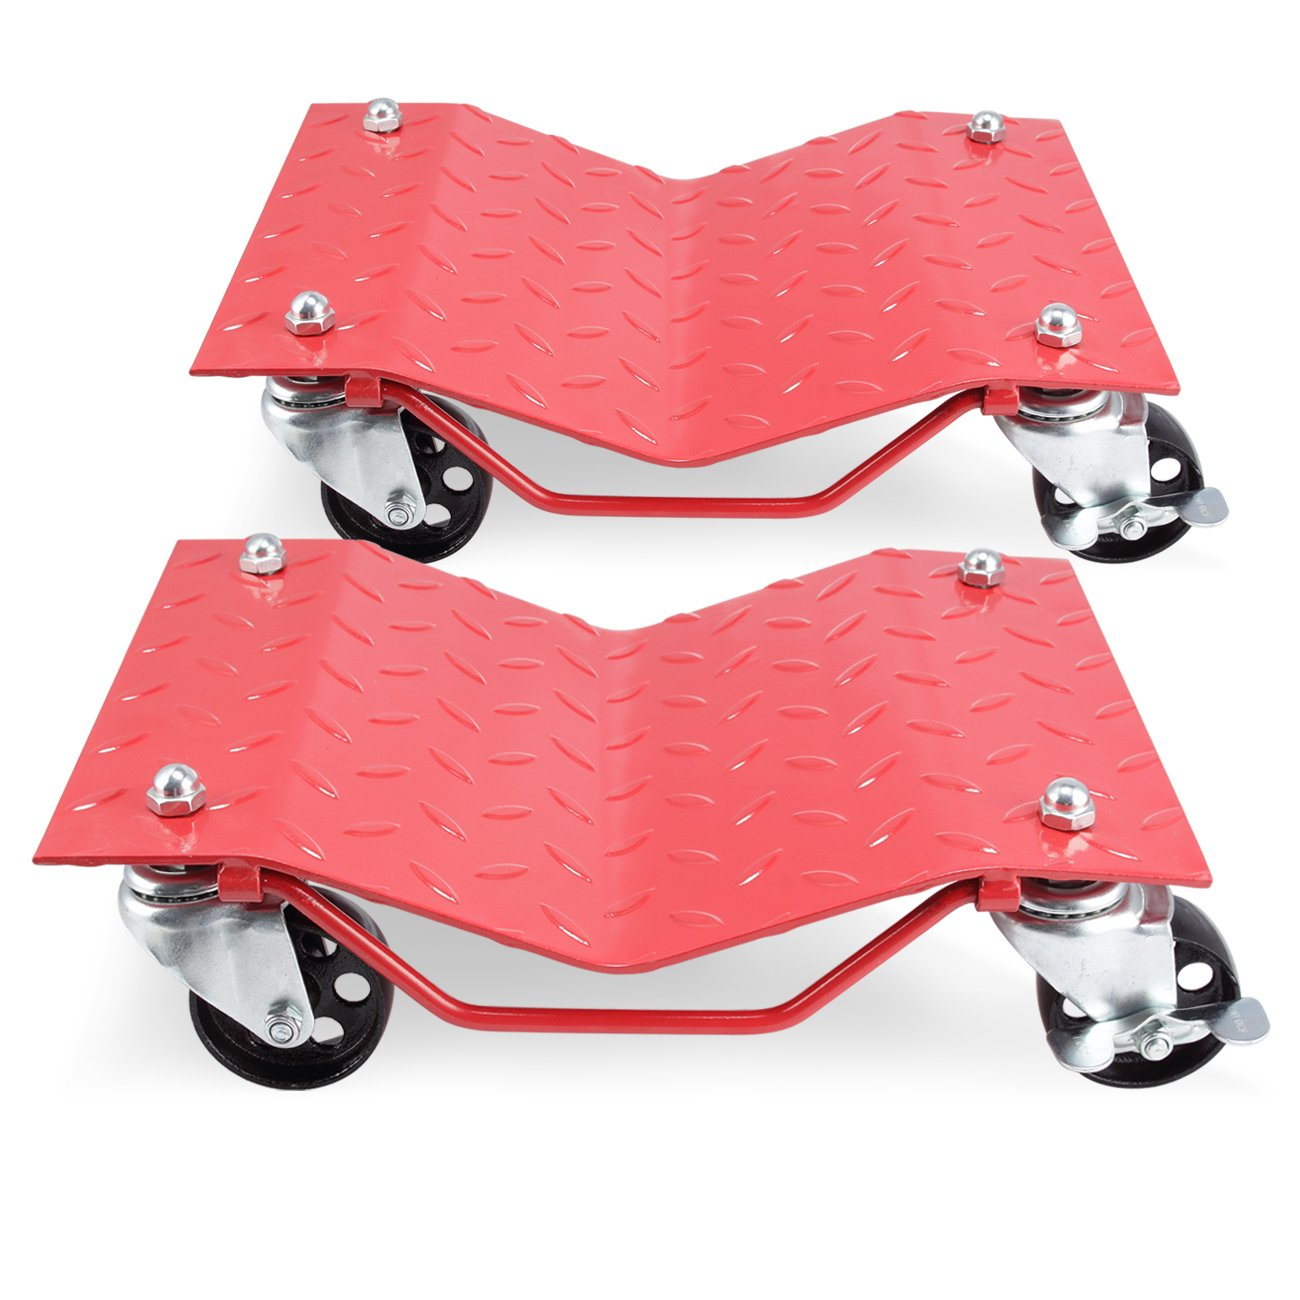 ARKSEN 2 Pack Set Heavy Duty Dollies Car Auto Repair Dolly Tire Skates Vehicle Moving Diamond w/Wheels & Lock, Red by ARKSEN (Image #2)